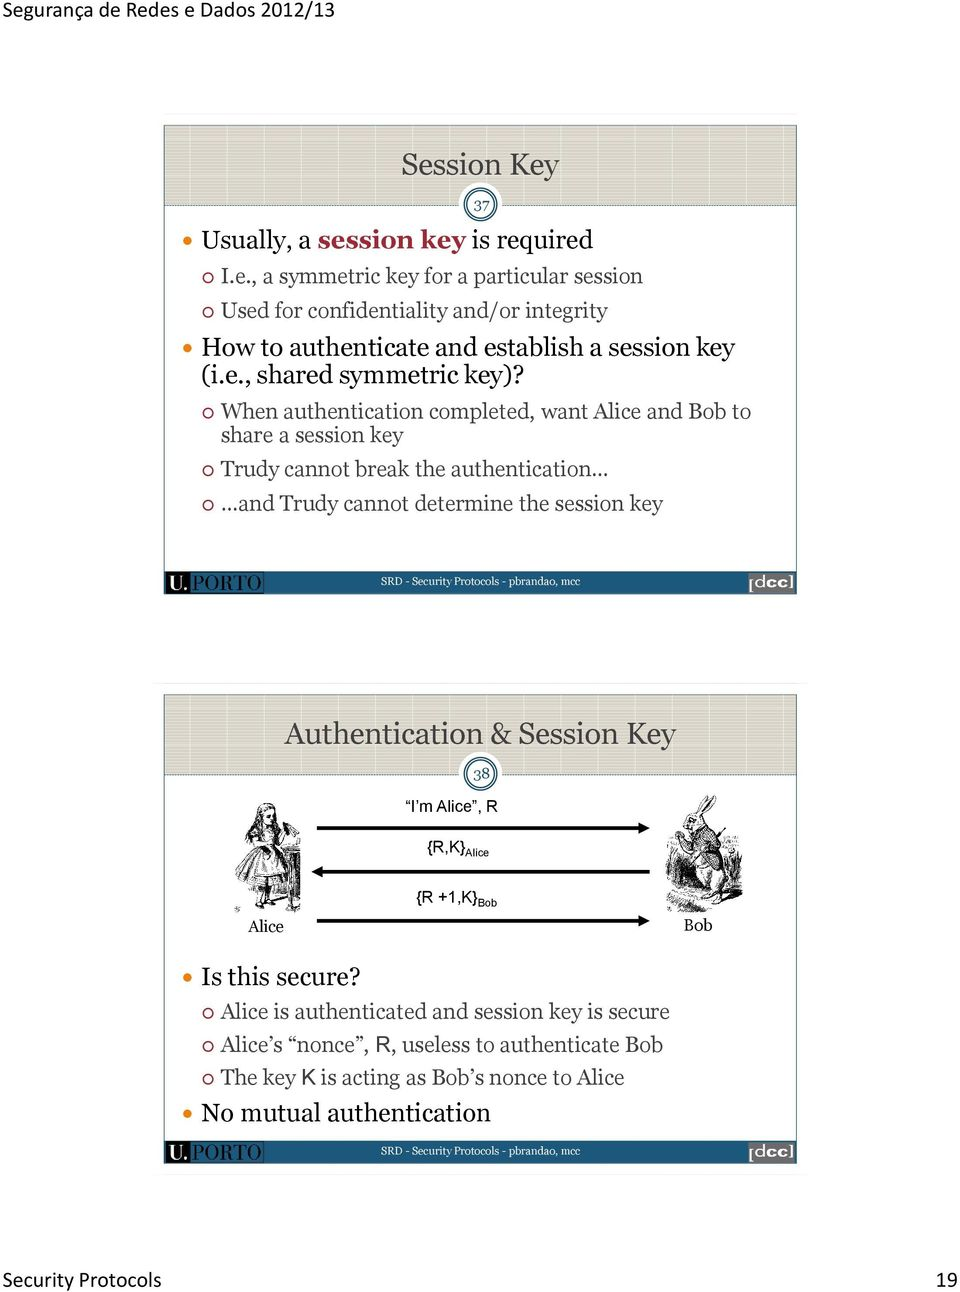 When authentication completed, want Alice and Bob to share a session key Trudy cannot break the authentication and Trudy cannot determine the session key 37